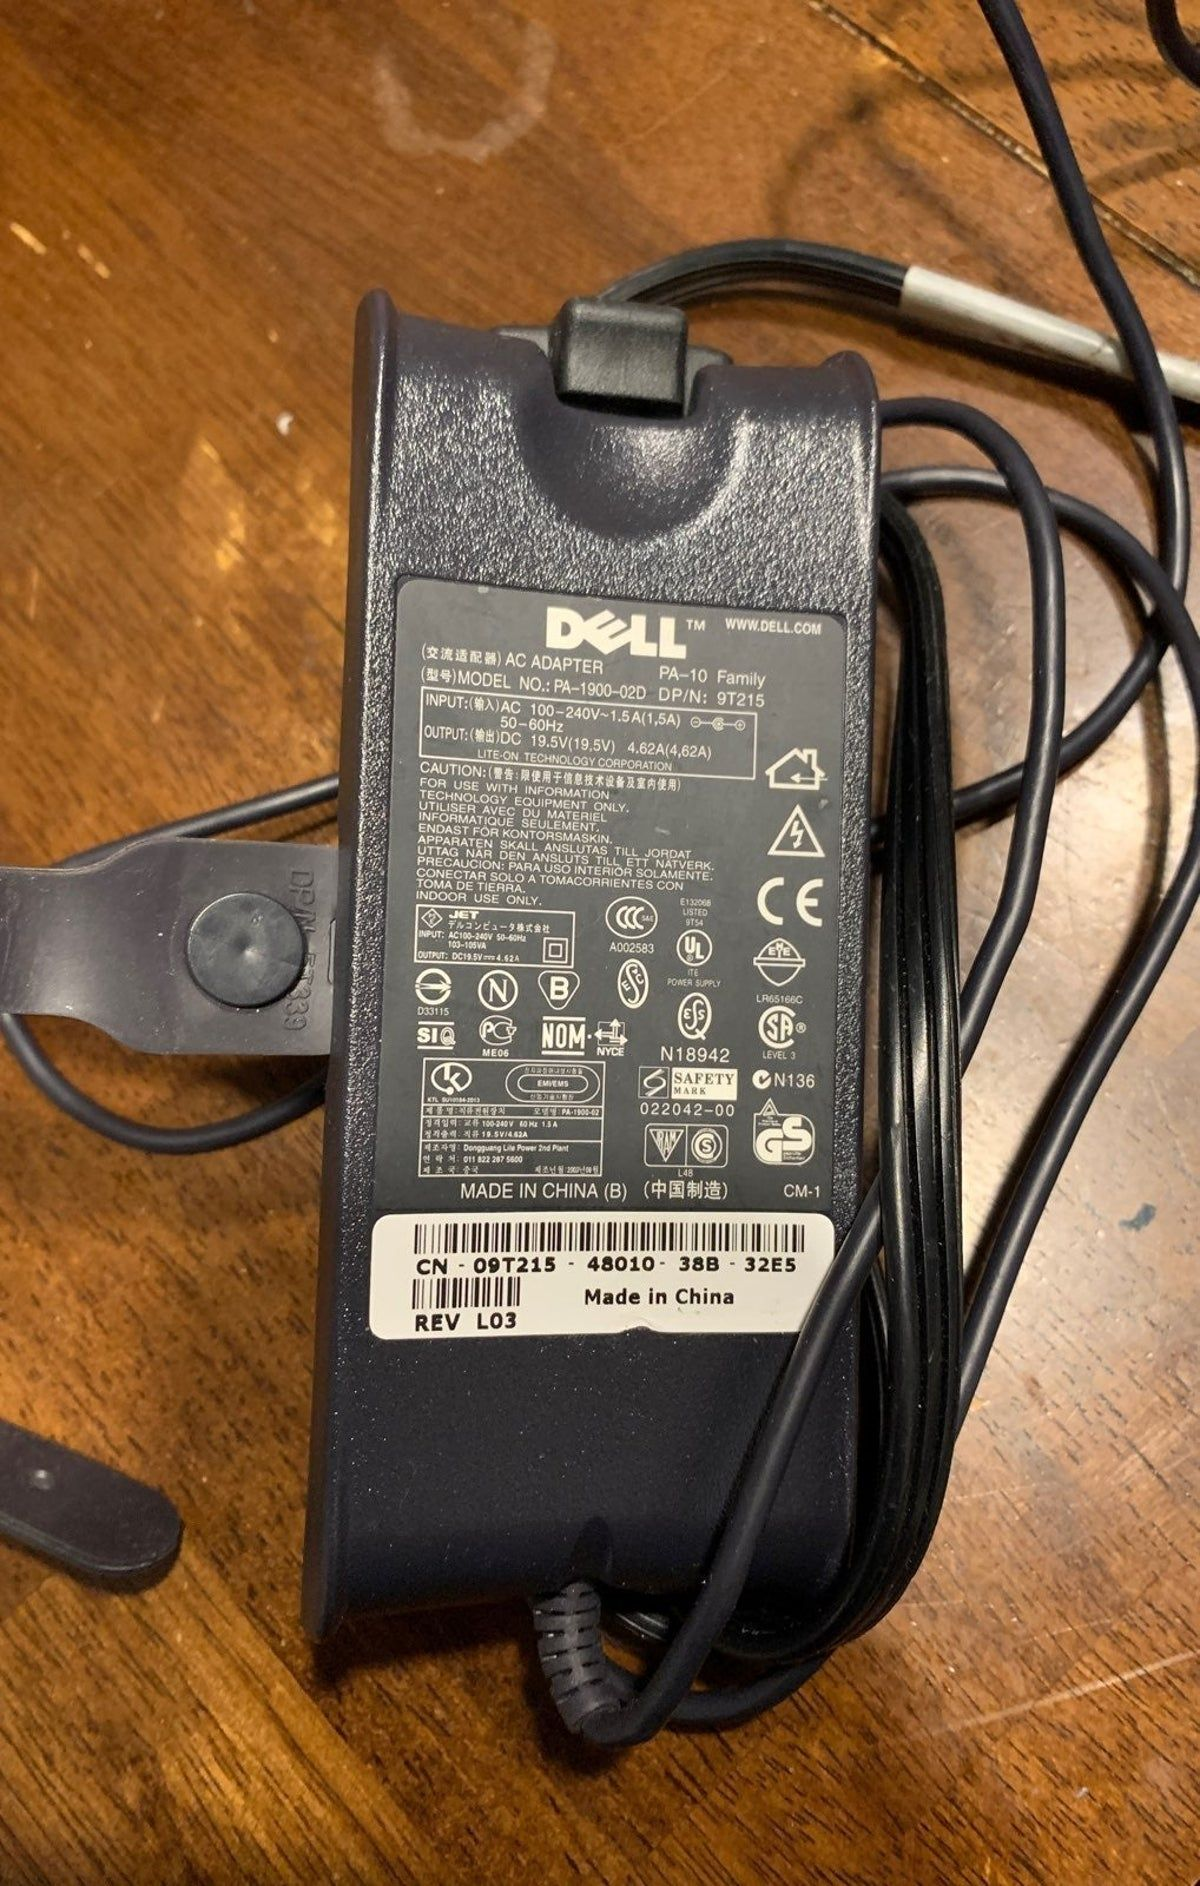 Charger- Dell computer charging Cord